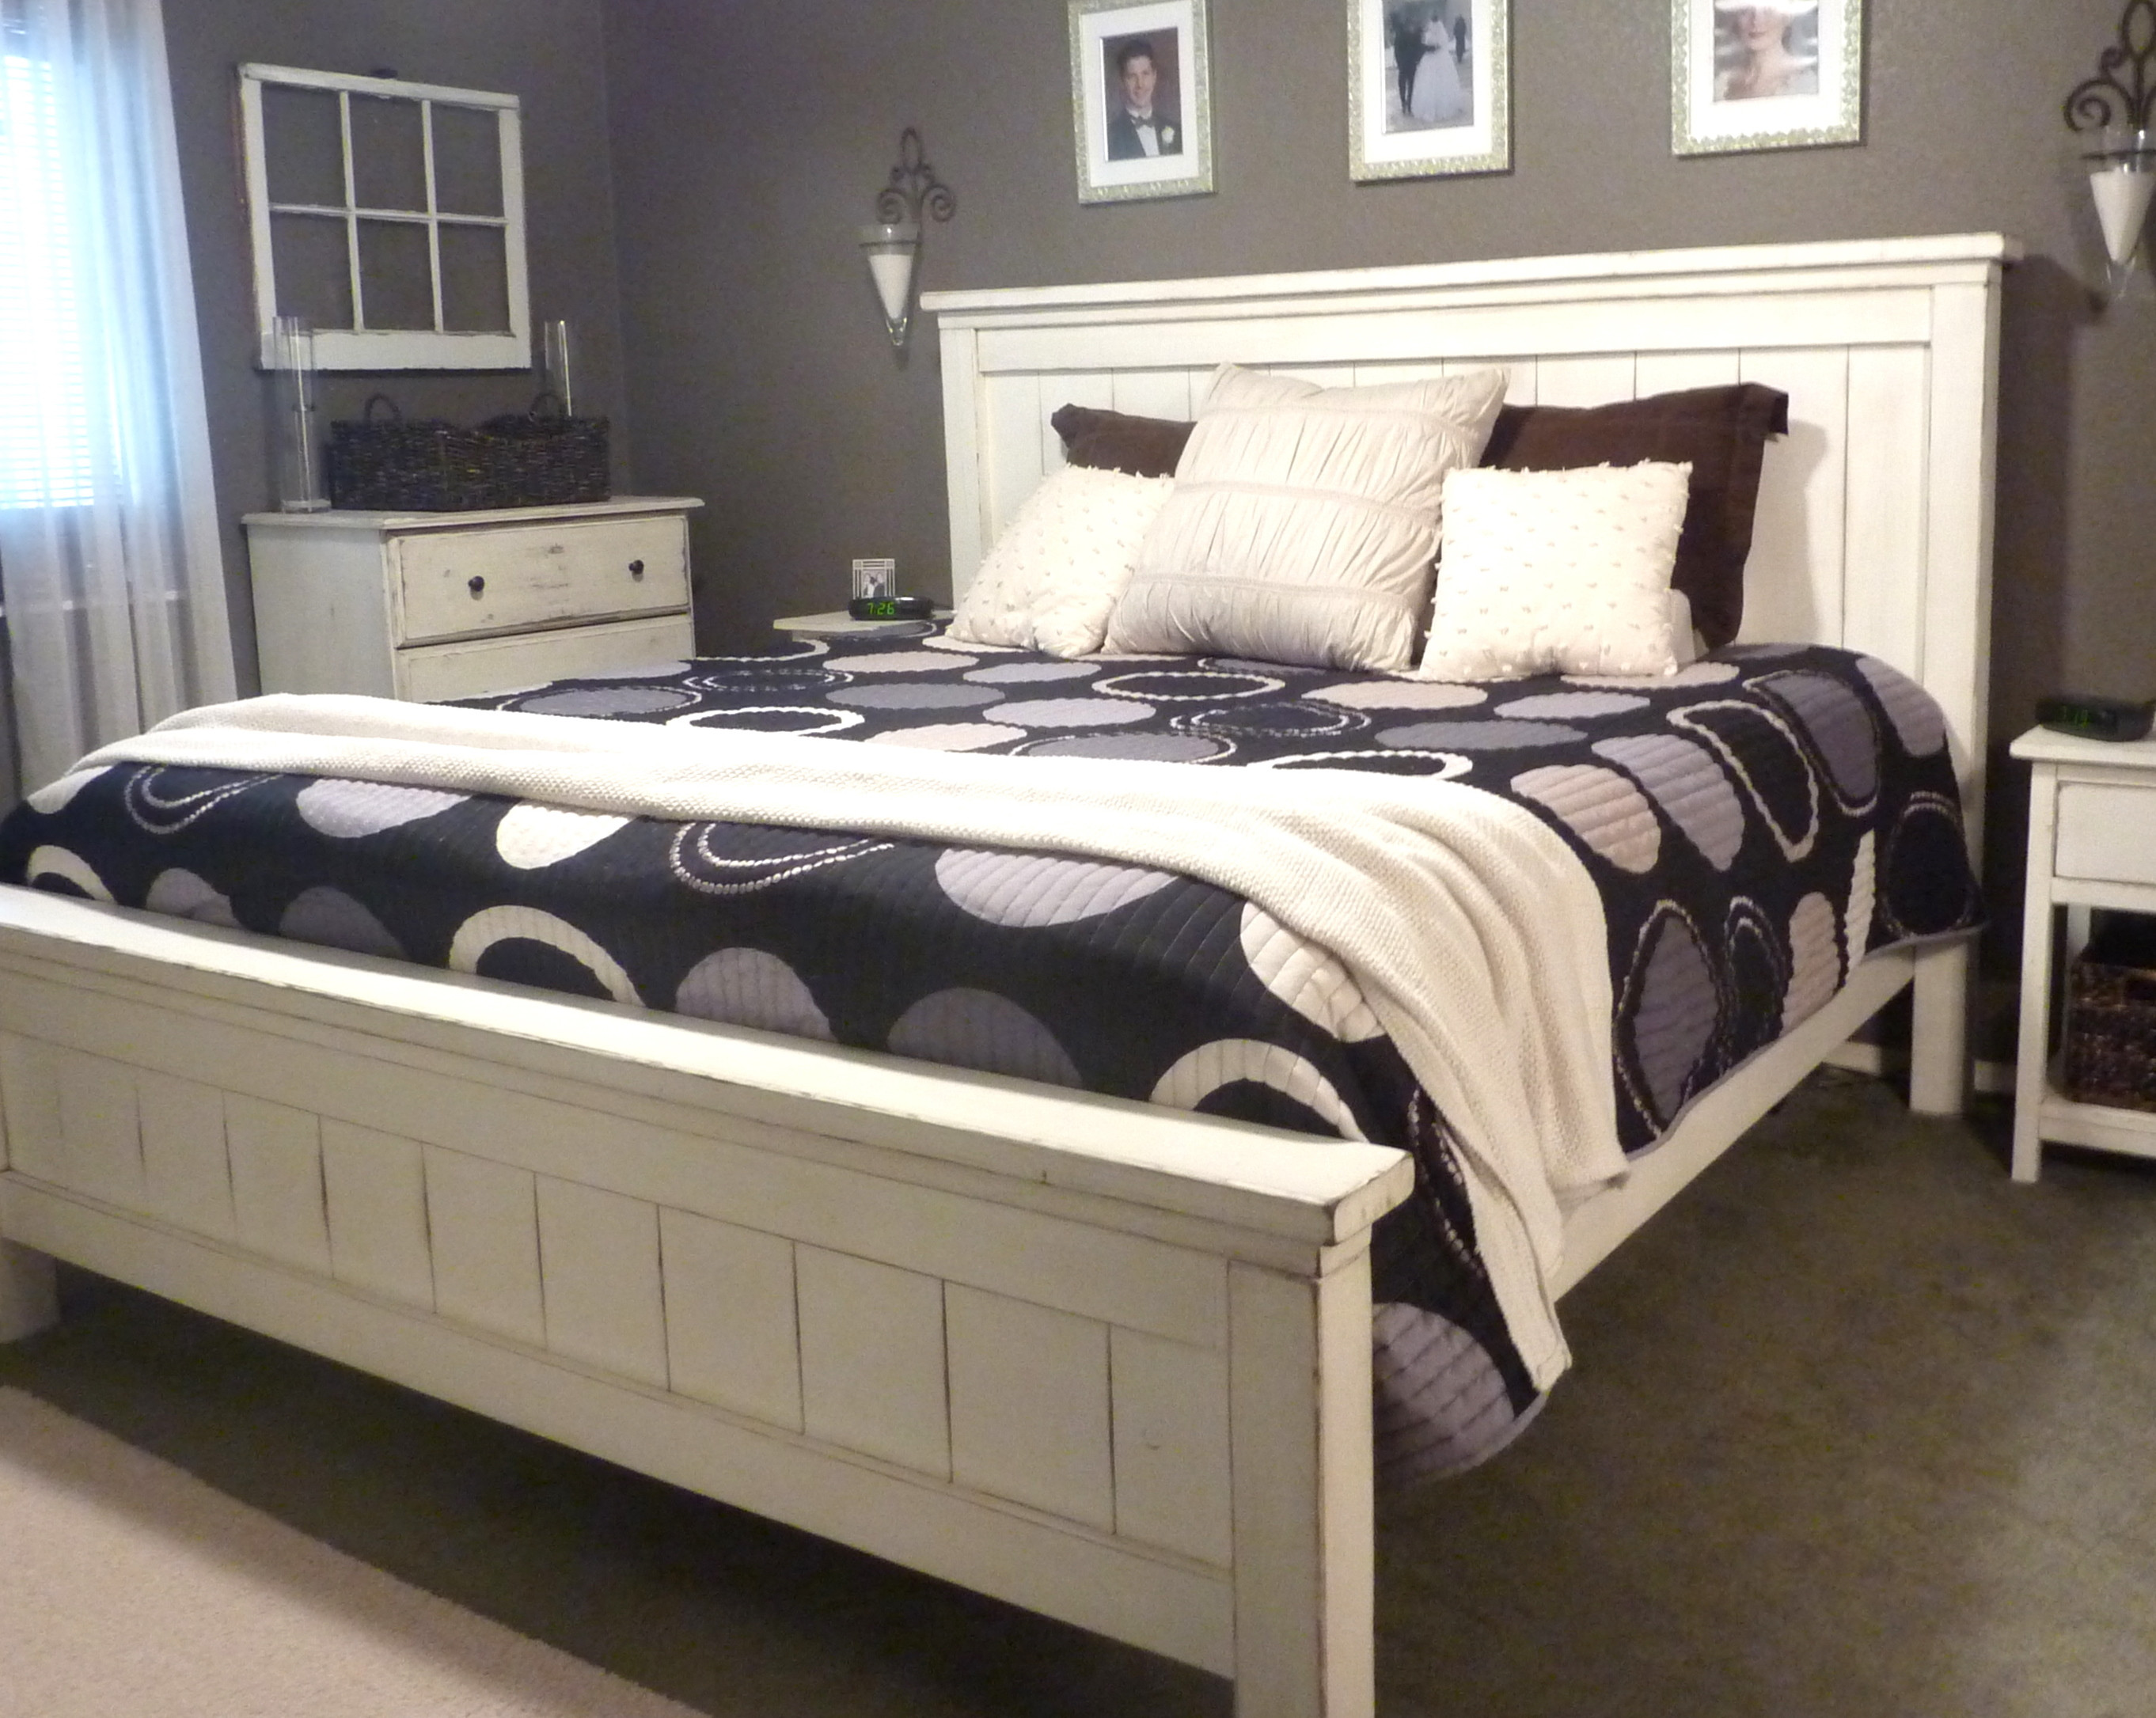 Best ideas about DIY King Beds . Save or Pin Ana White Now.